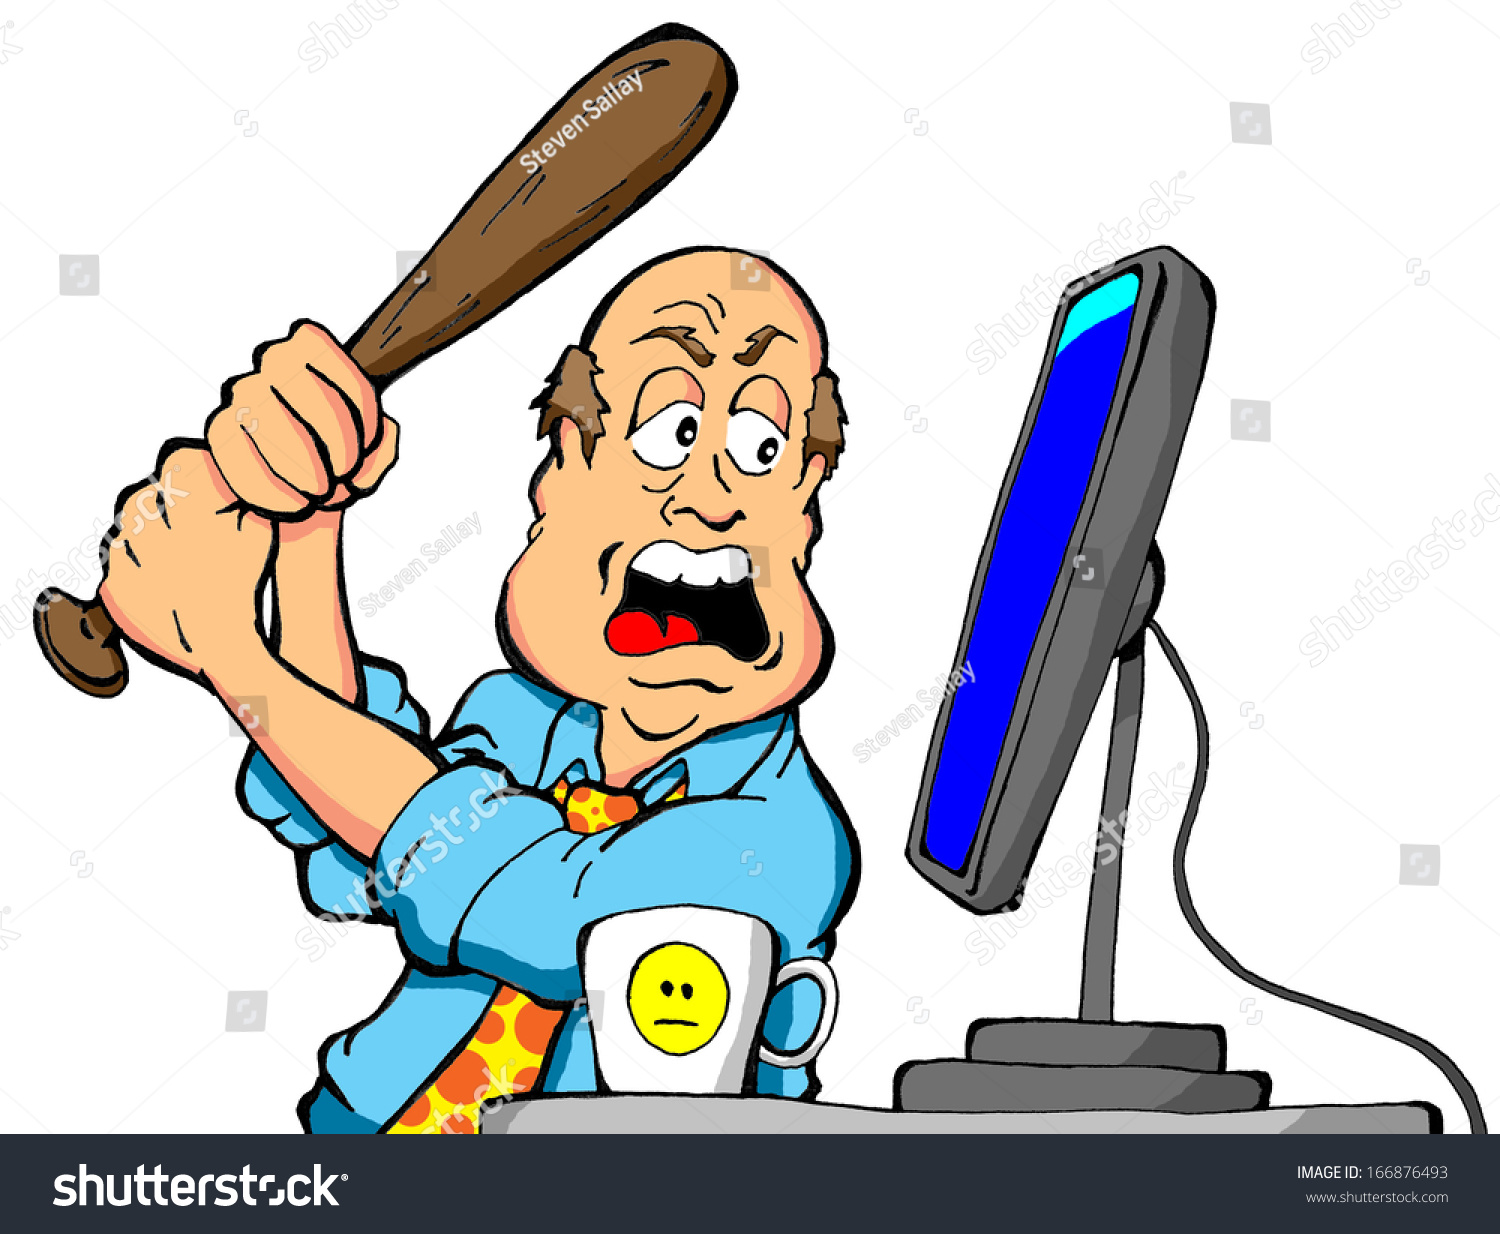 clipart frustrated man - photo #24